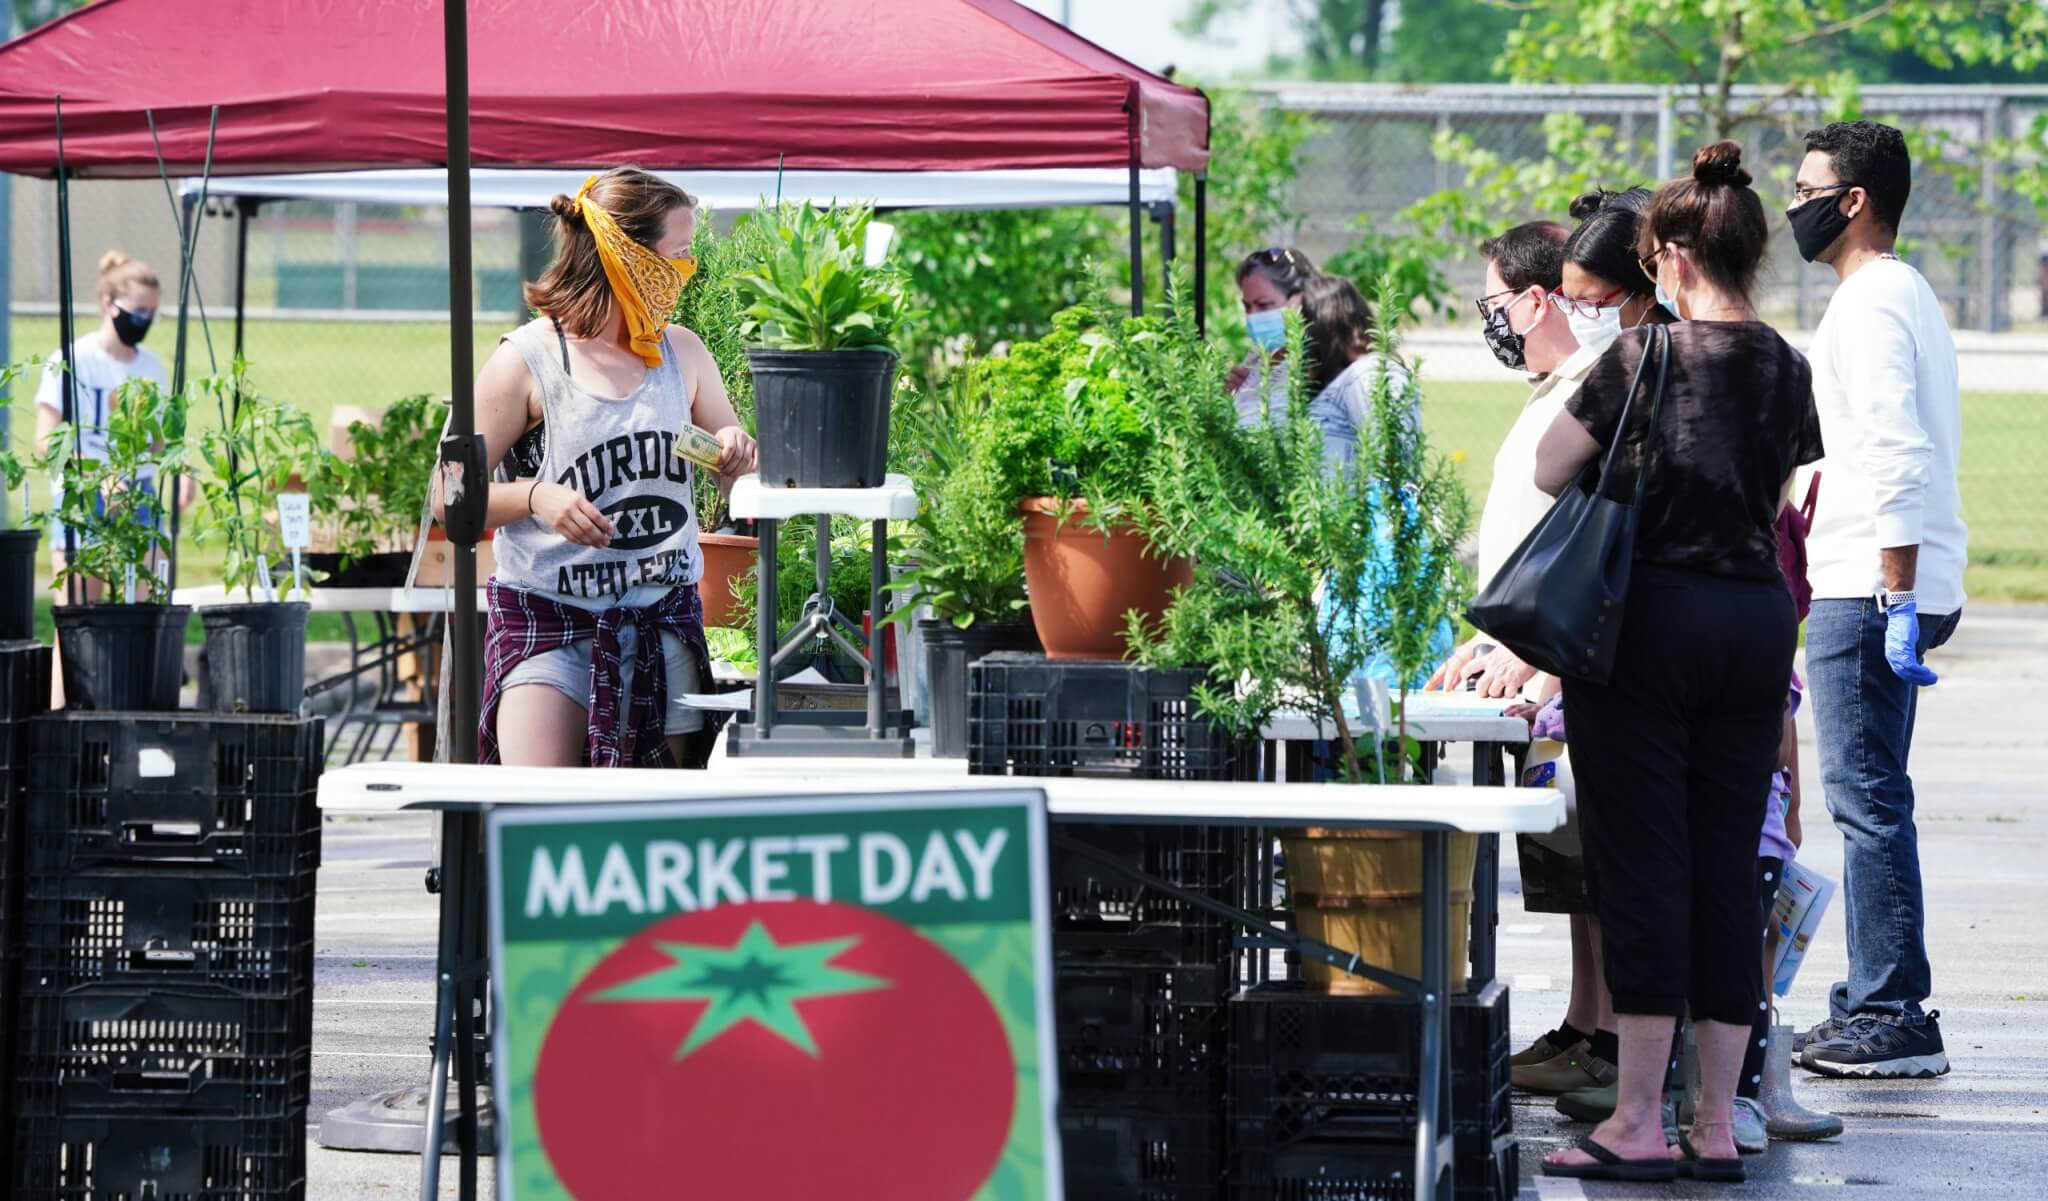 West Lafayette, IN farmers market. Photo by Tom Campbell.